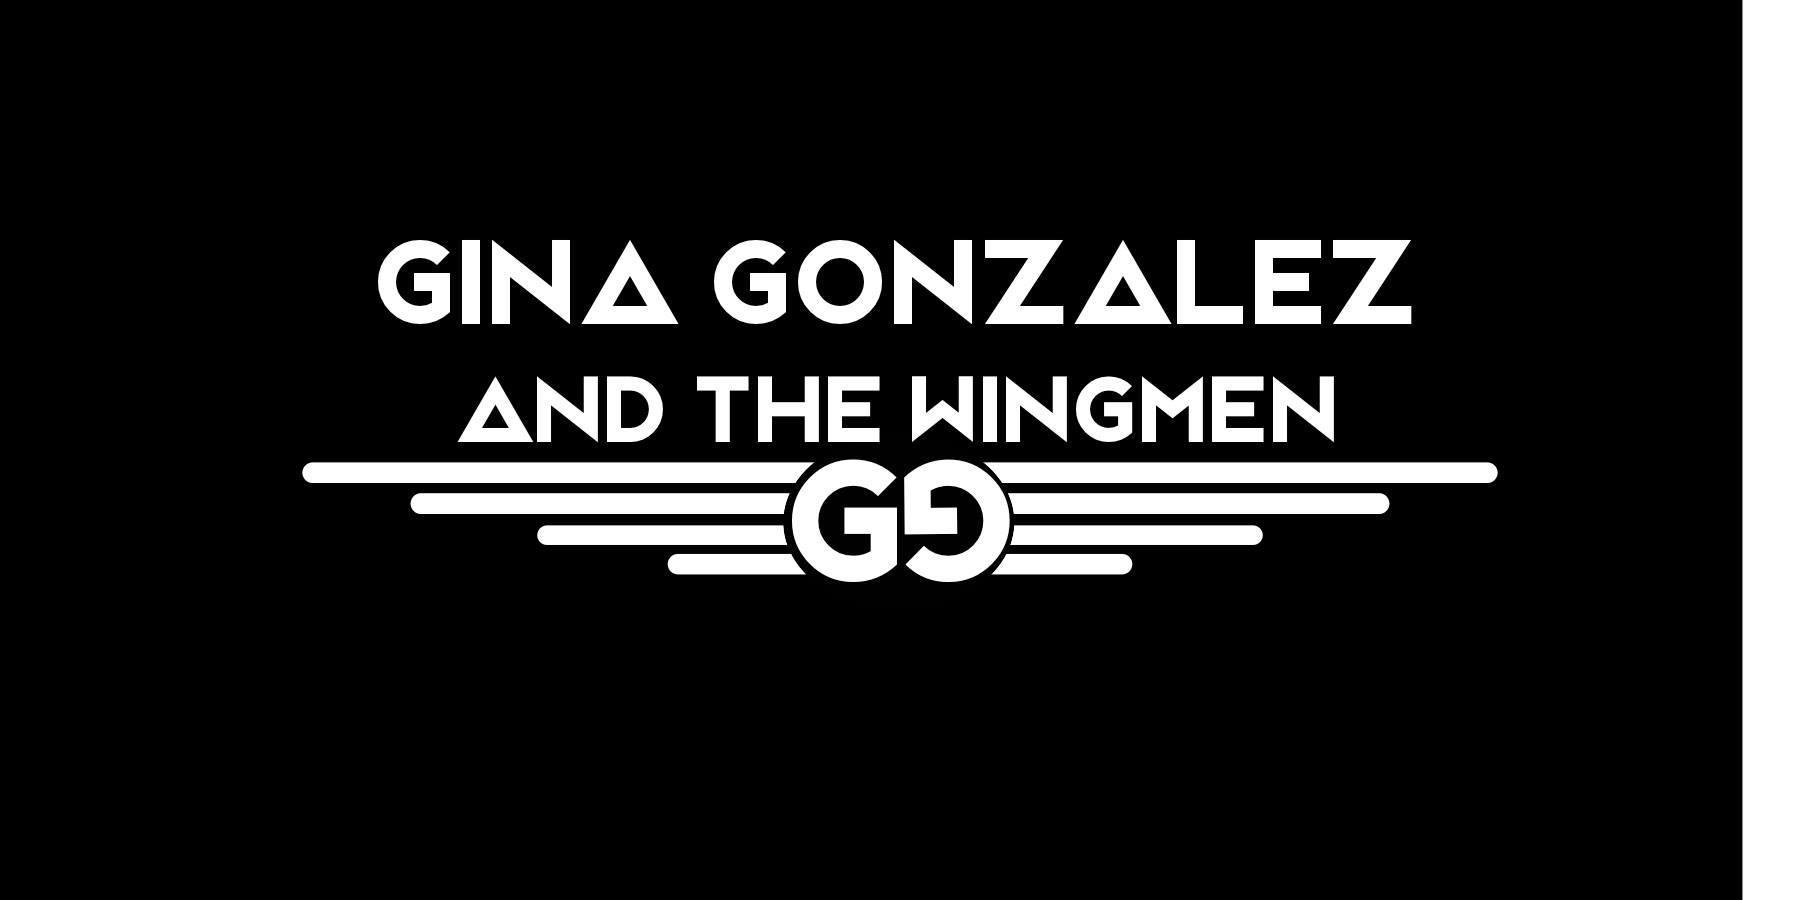 Gina Gonzalez and the Wingmen at Mickey Finn's Brewery